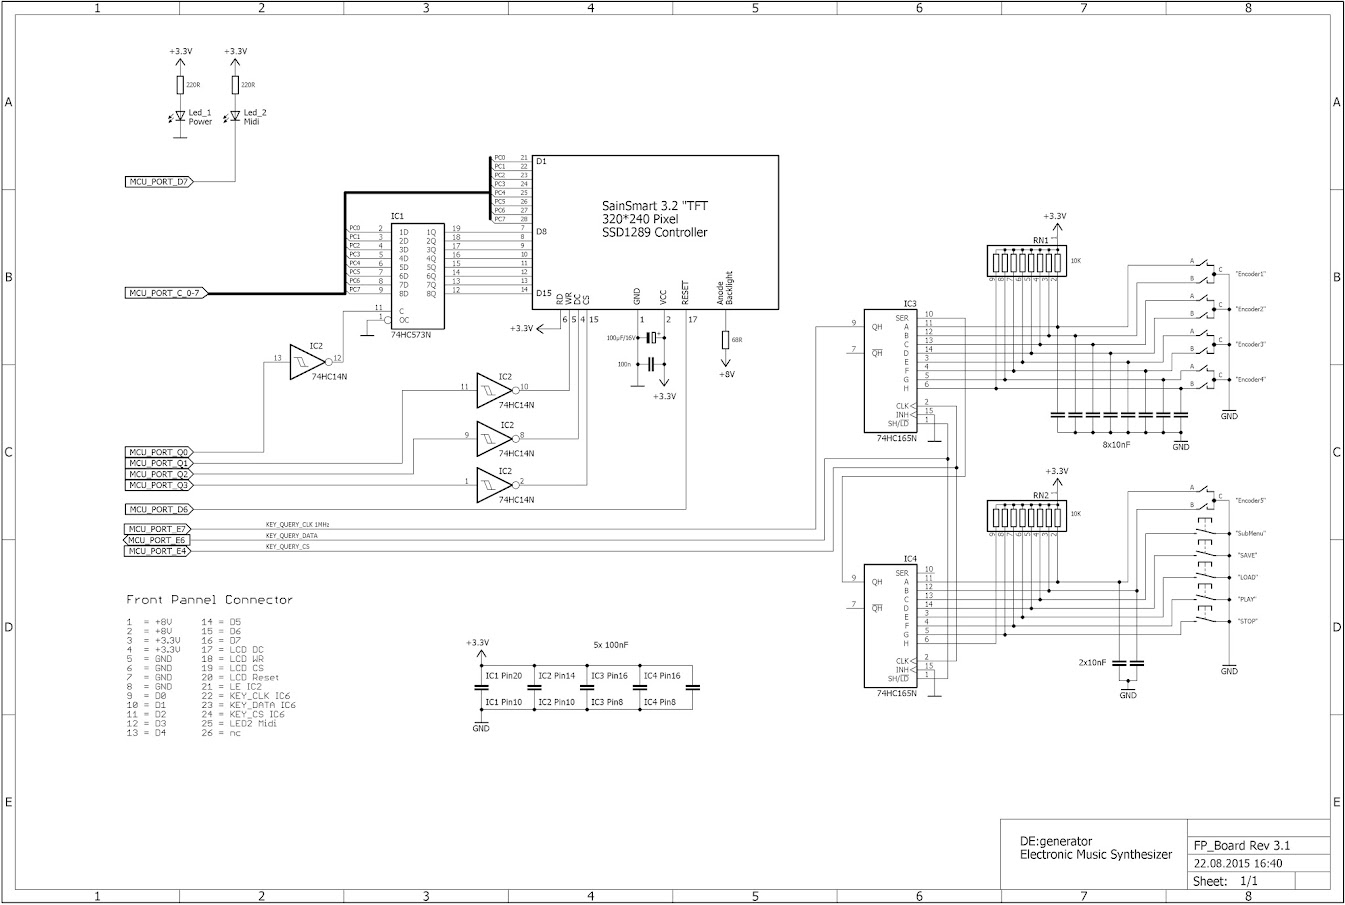 7 1 surround diagram wiring with 5 1 Channel Sound Card on Bose Home Theater Speaker System Wiring Diagrams as well Sony Home Theatre Wiring Diagrams furthermore 639 Diy 50 Watt Inverter in addition Sony Home Theater Hook Up Diagram likewise Sony Home Theater Wiring Diagram.